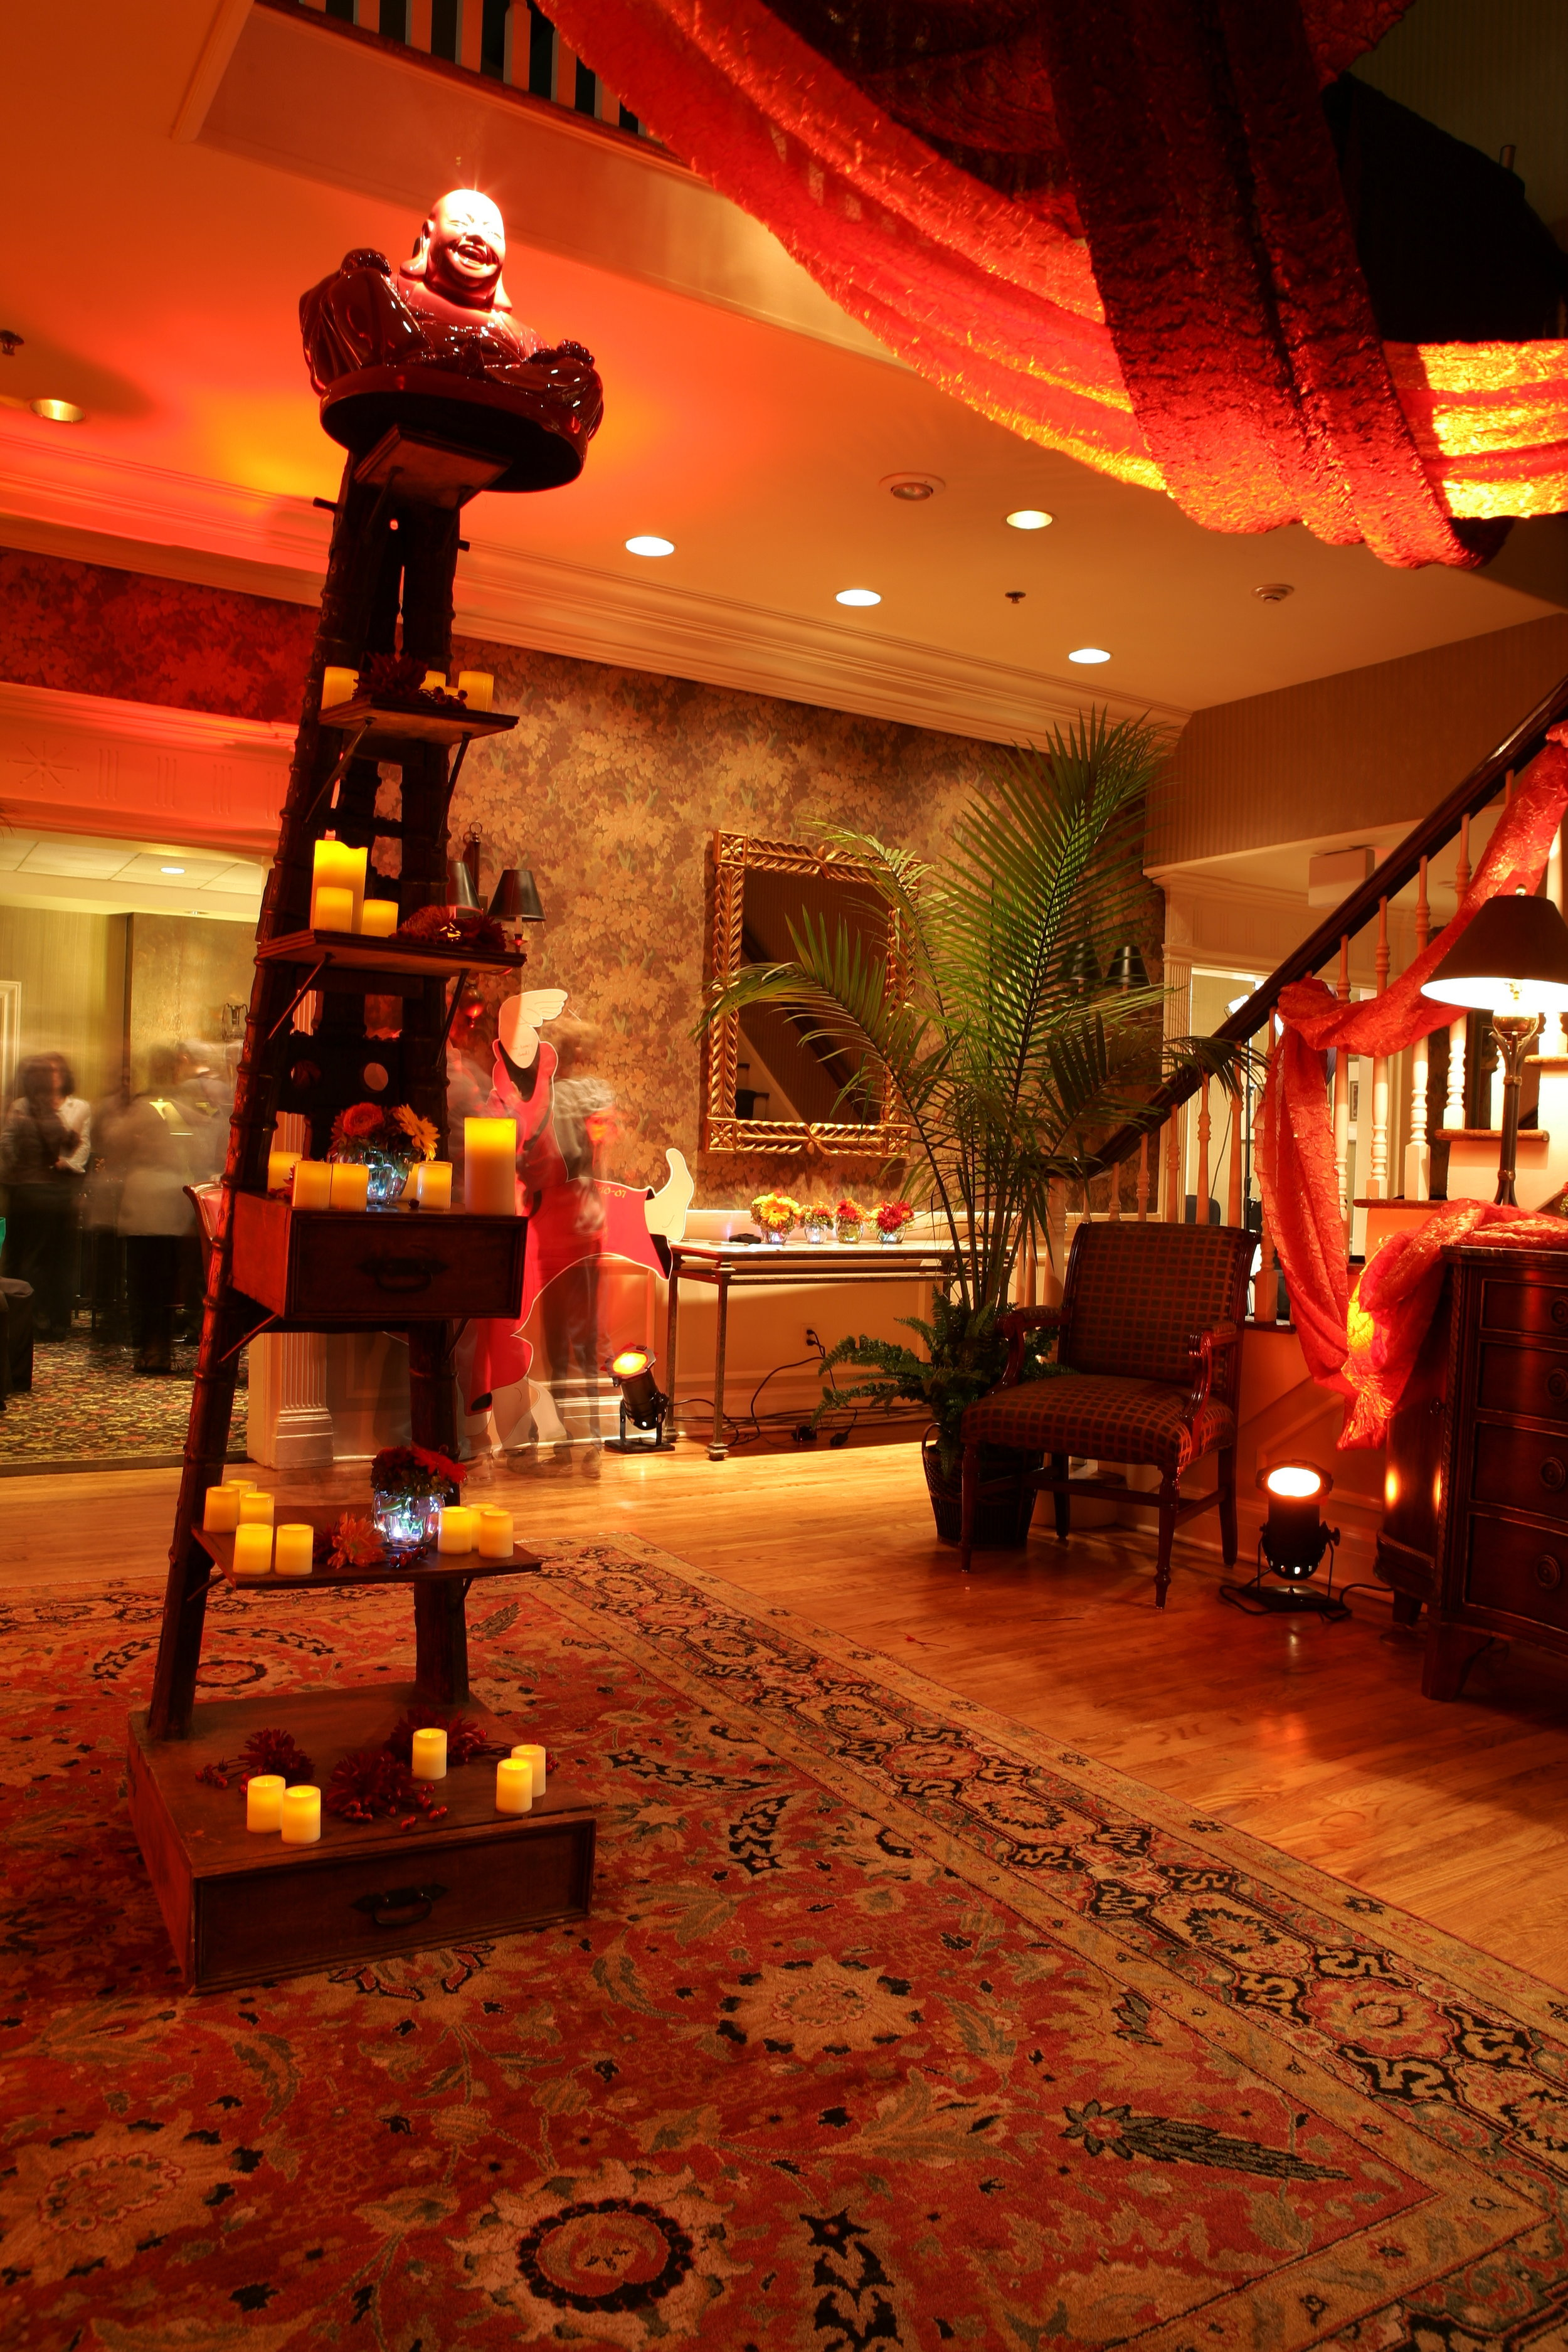 international+themed+props+decor+lighting+asian+themed+theme+party+parties+design+prop+rental+rentals+nj+ny+pa+eggsotic+events.jpg